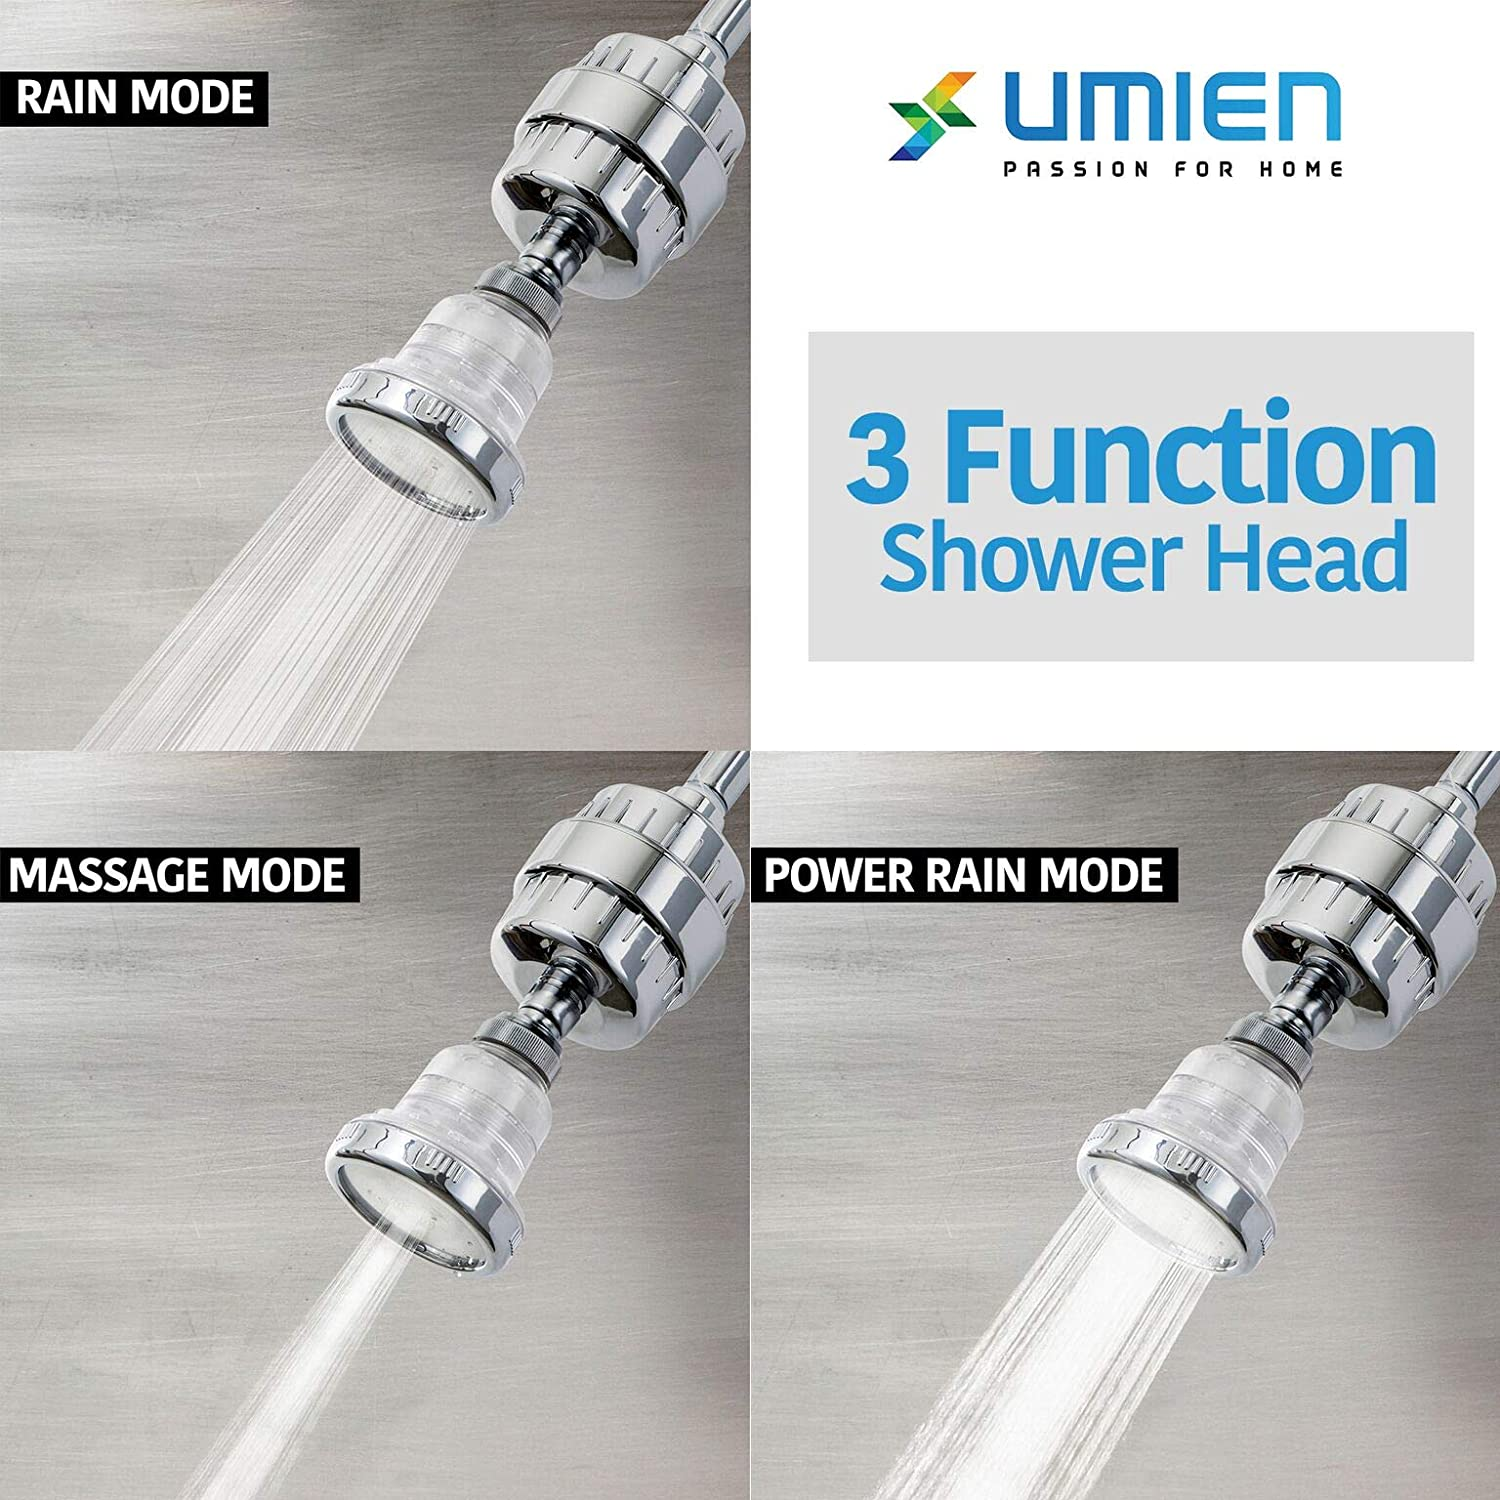 15 Stage Shower Head Filter Includes Shower Head And 2 Filter Cartridges Softens Hard Water Shower Head Filter Removes Chlorine And Chloride-Full Of Vitamins And Nutrients for Rich Healthy Skin